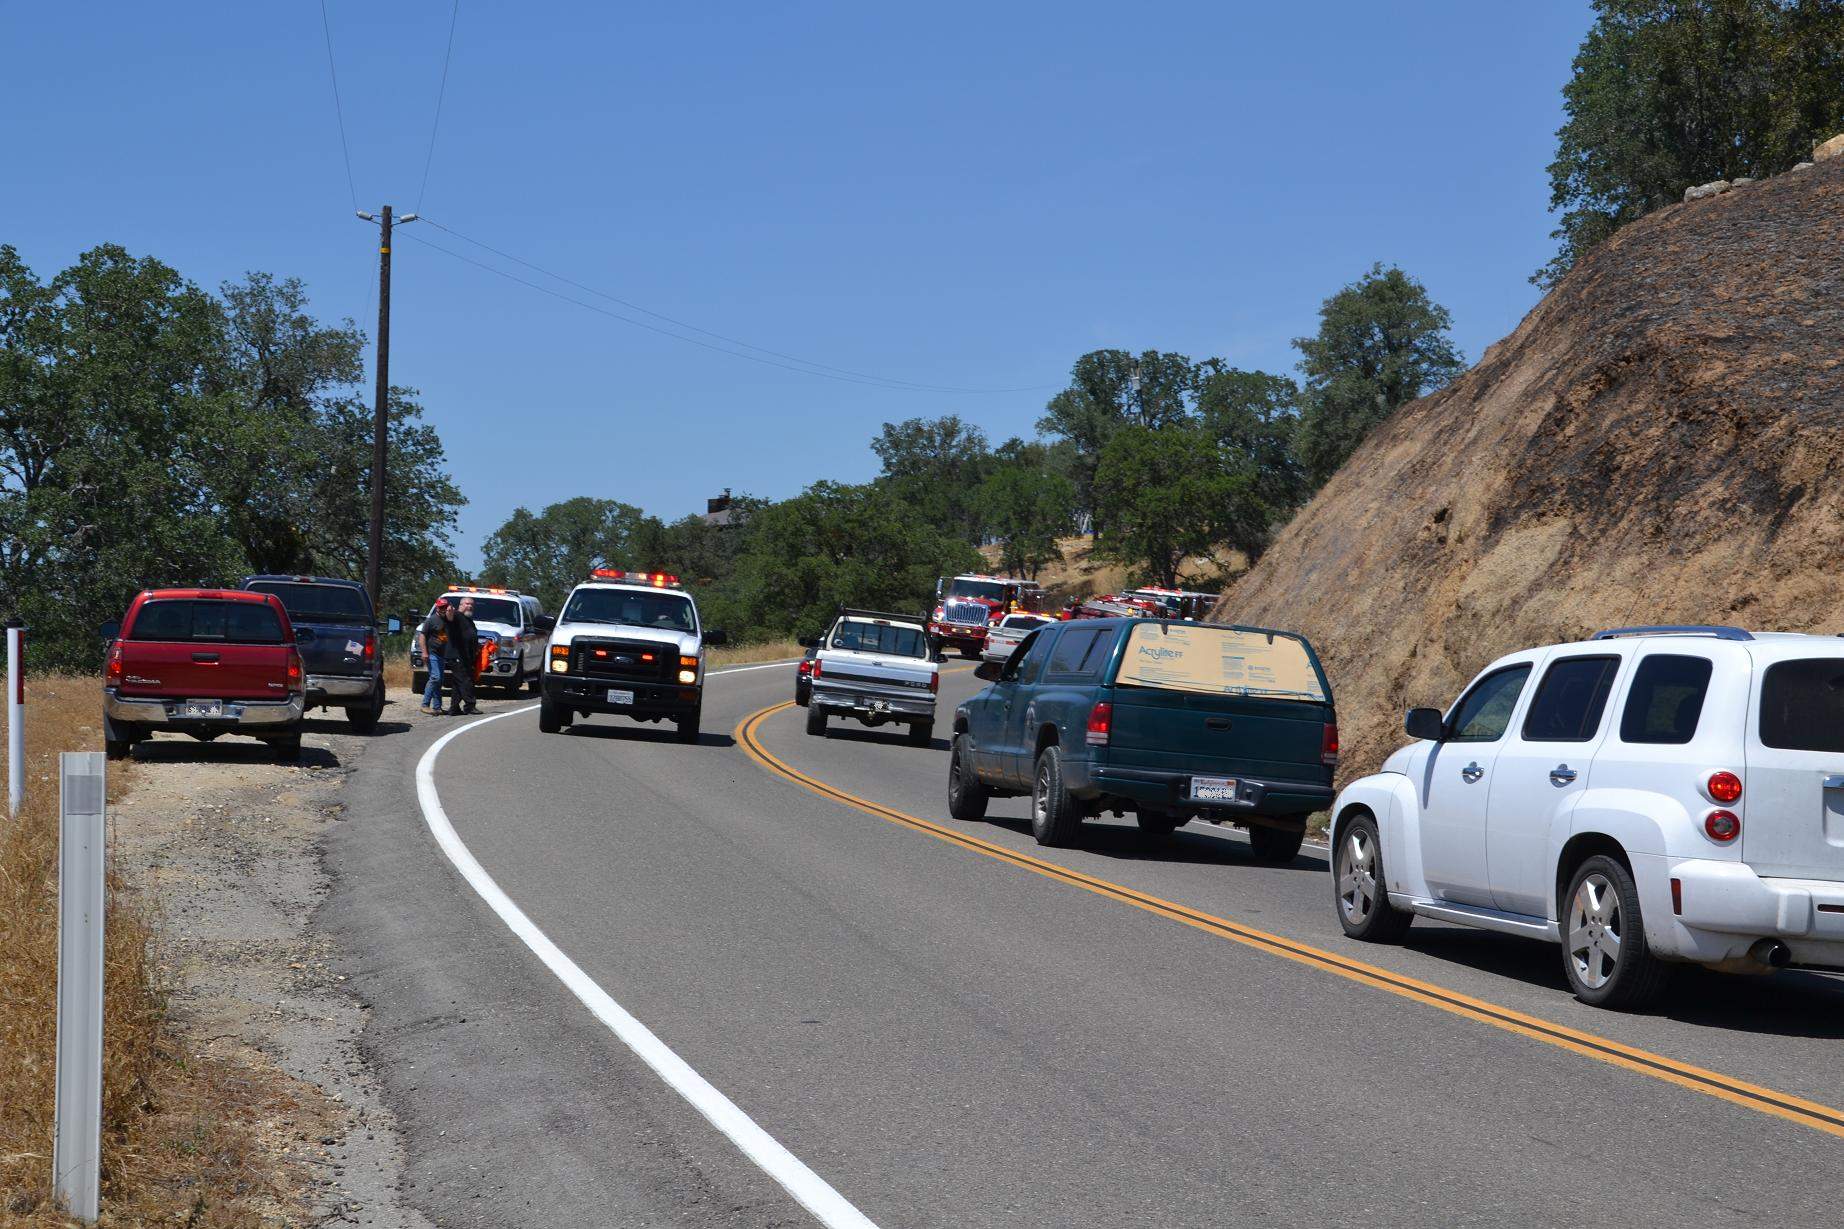 Traffic jam on Road 400 at Lakes Fire - photo by Gina Clugston